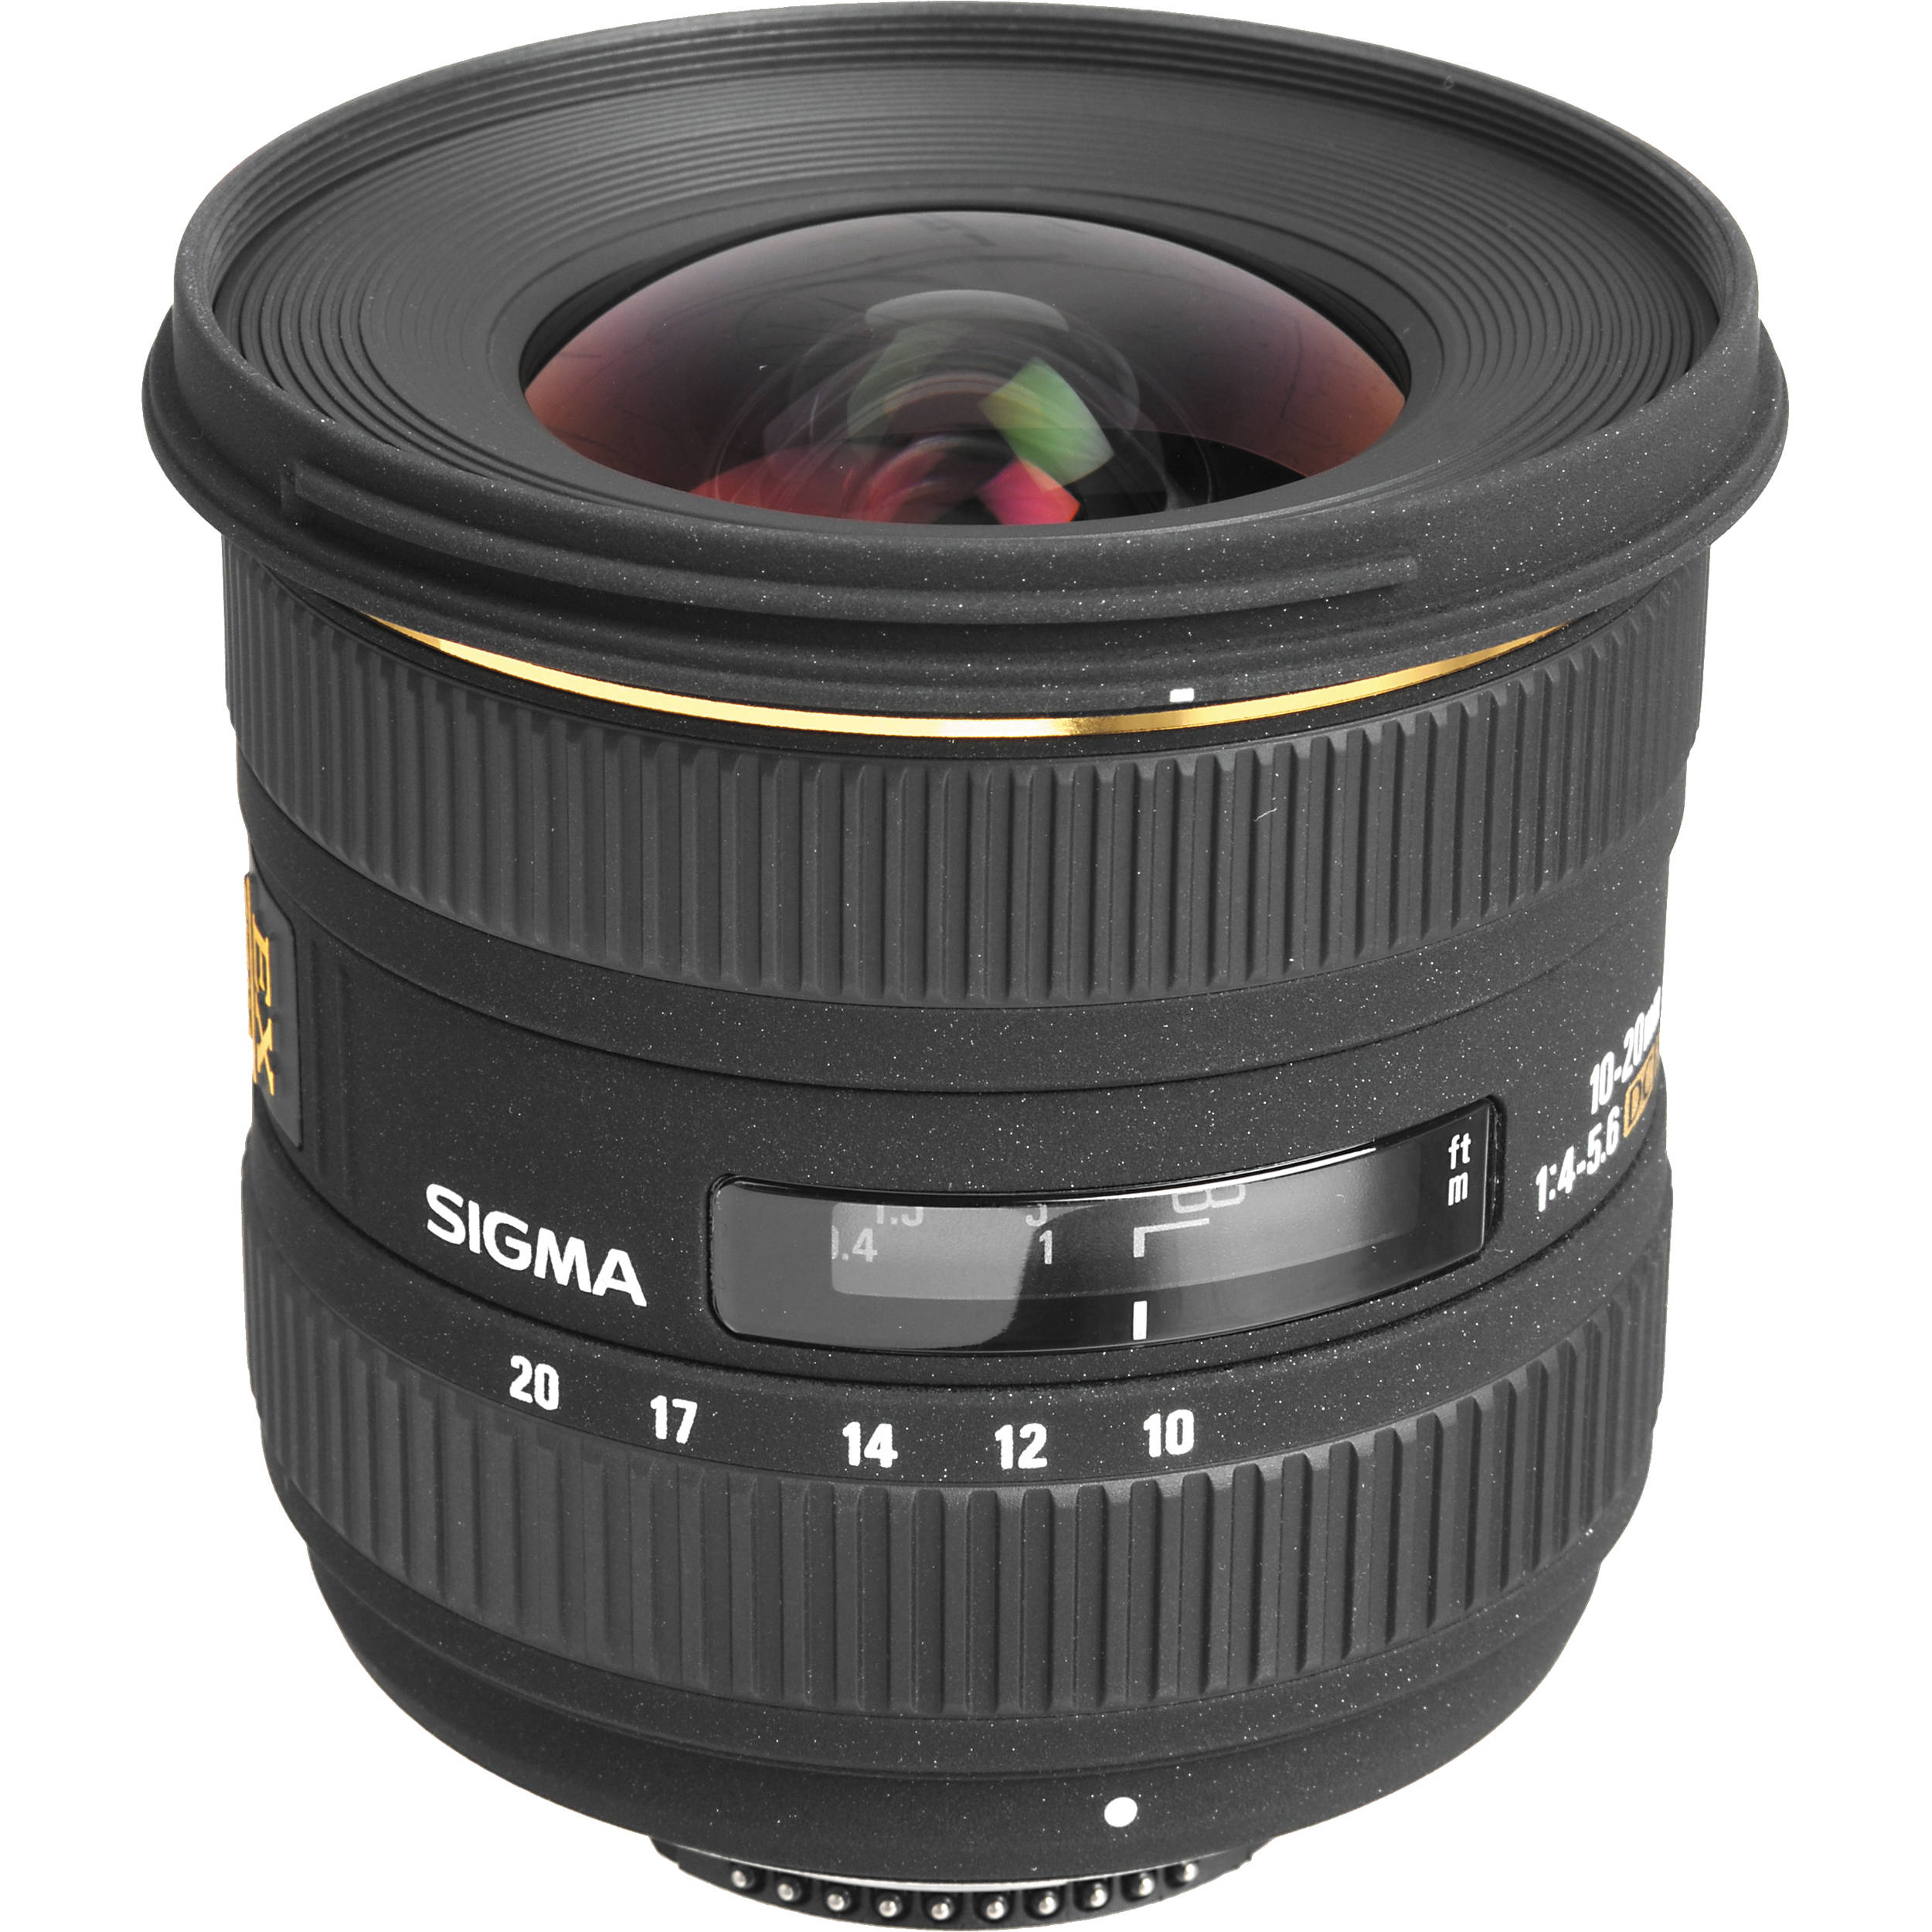 Sigma 202306 Replacement for Sigma 201306   B&H Photo Video